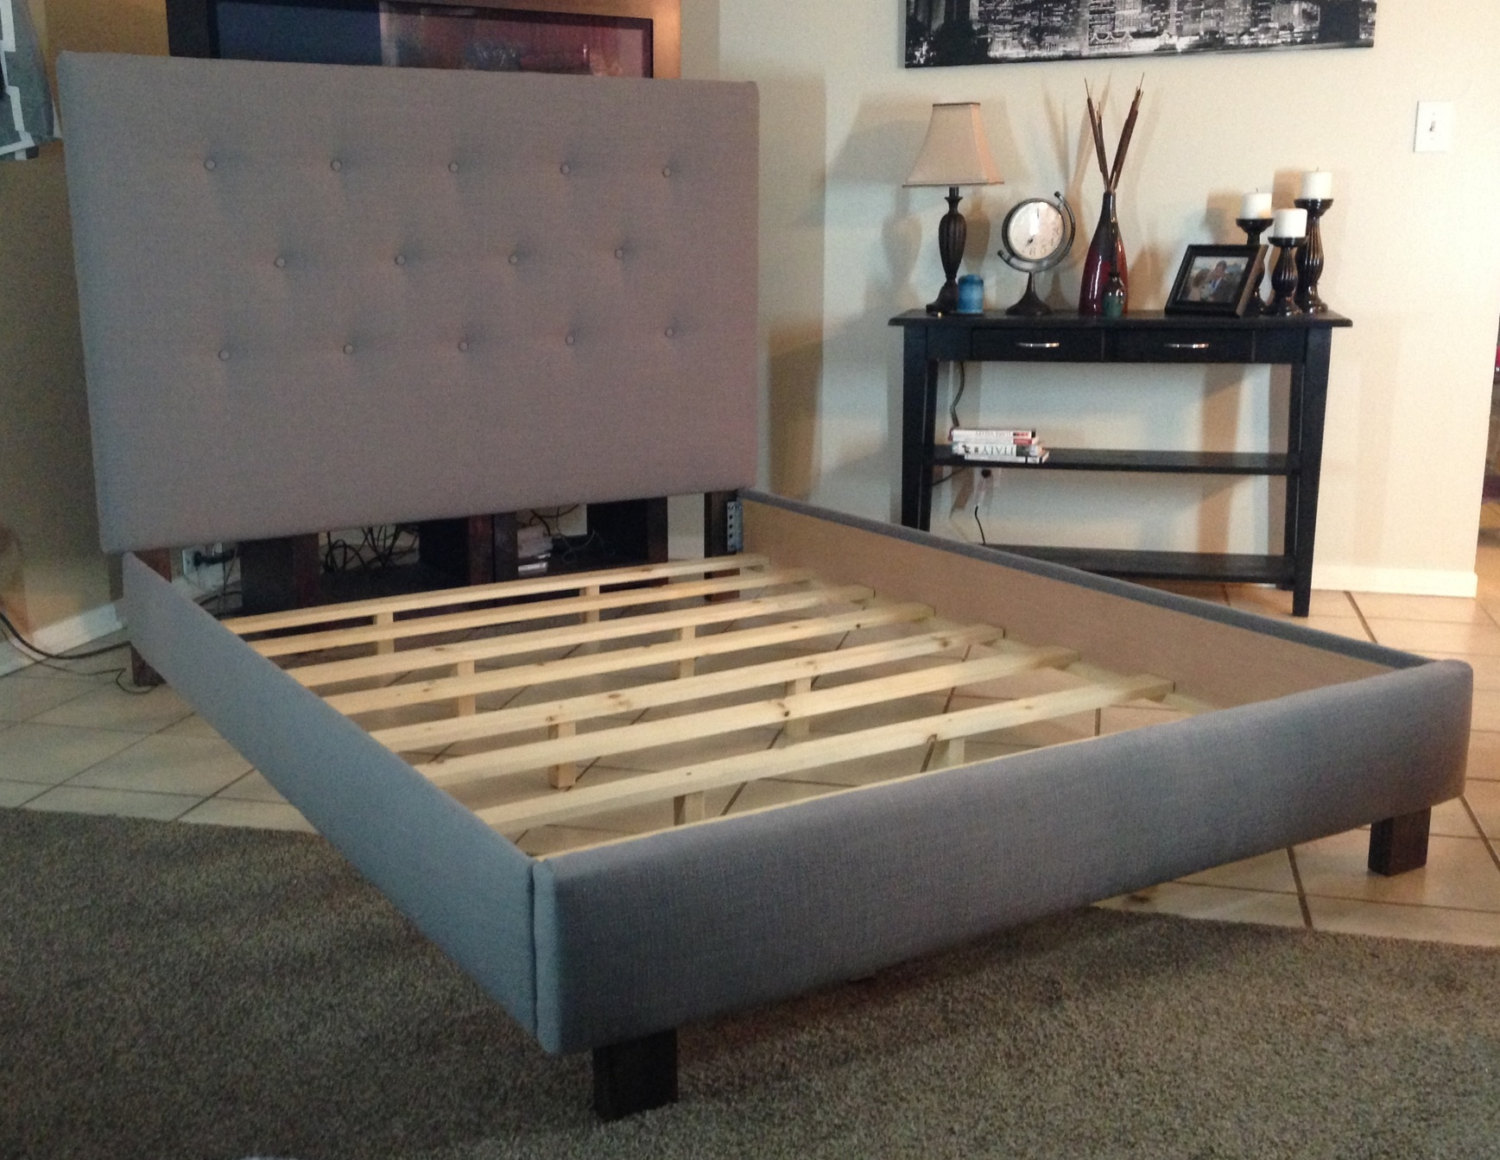 Cozy king size bed frame with headboard image of: homemade king size bed frame vqzyxyo